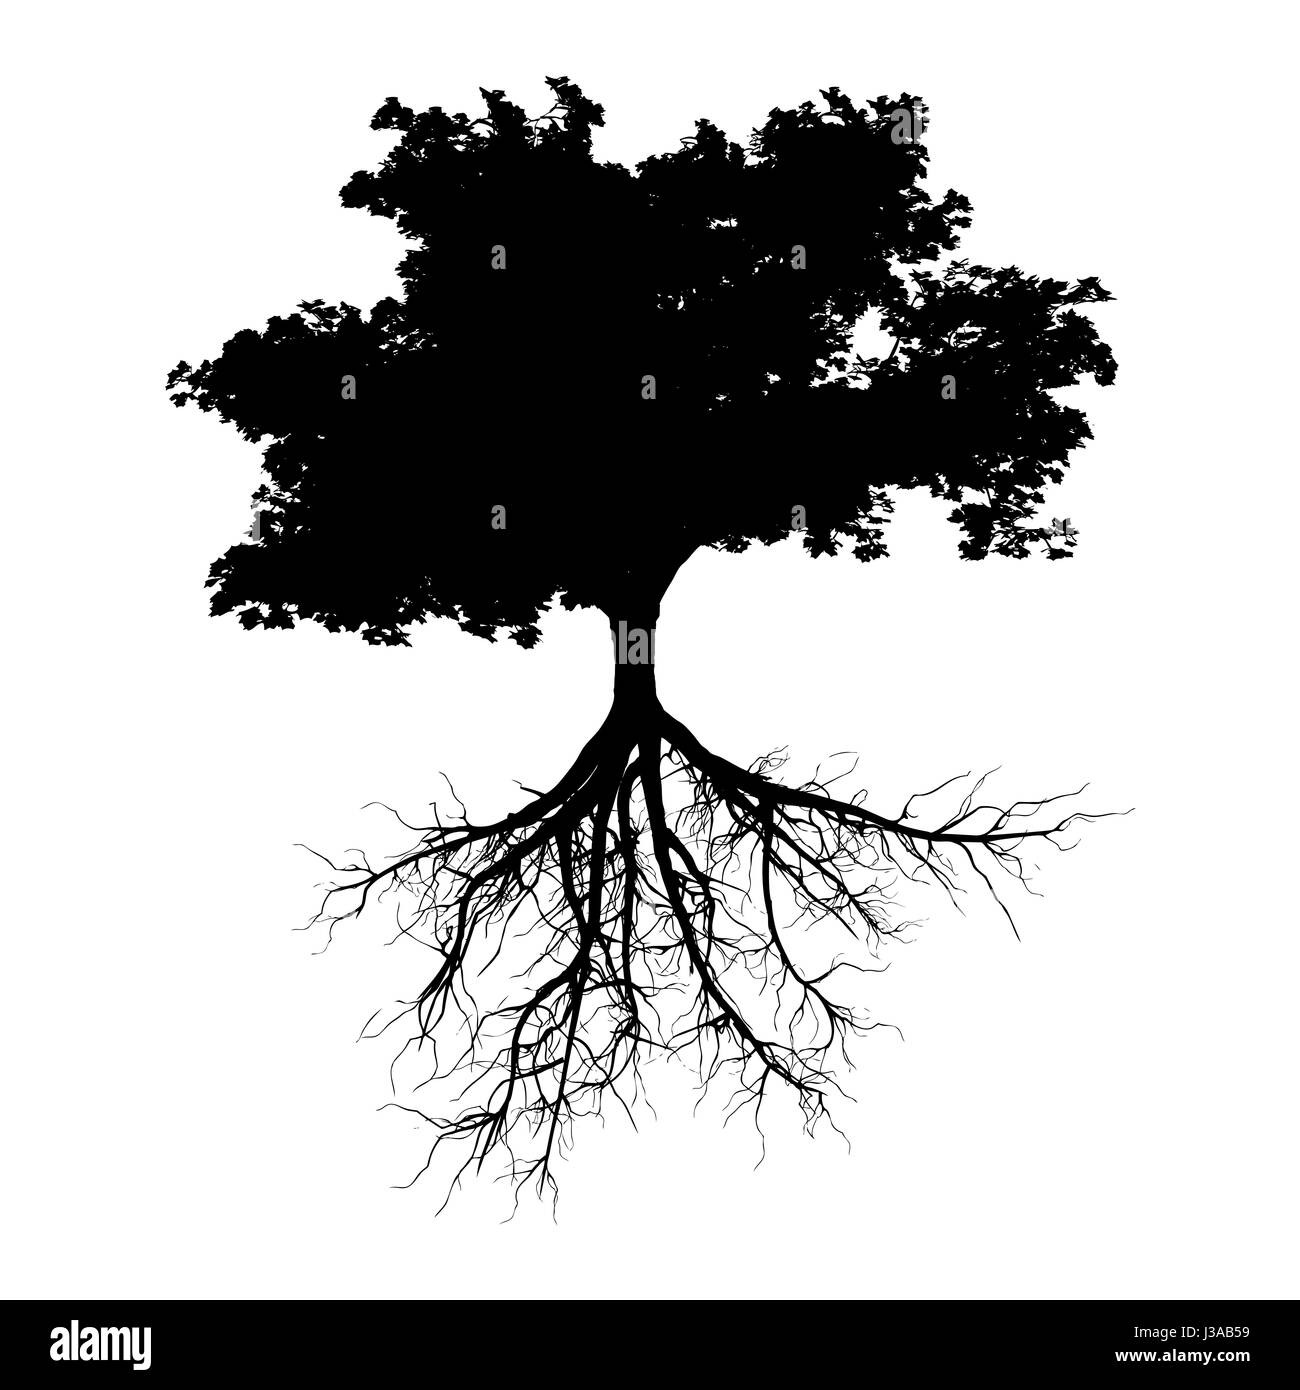 black tree silhouette illustration roots stockfotos black tree silhouette illustration roots. Black Bedroom Furniture Sets. Home Design Ideas